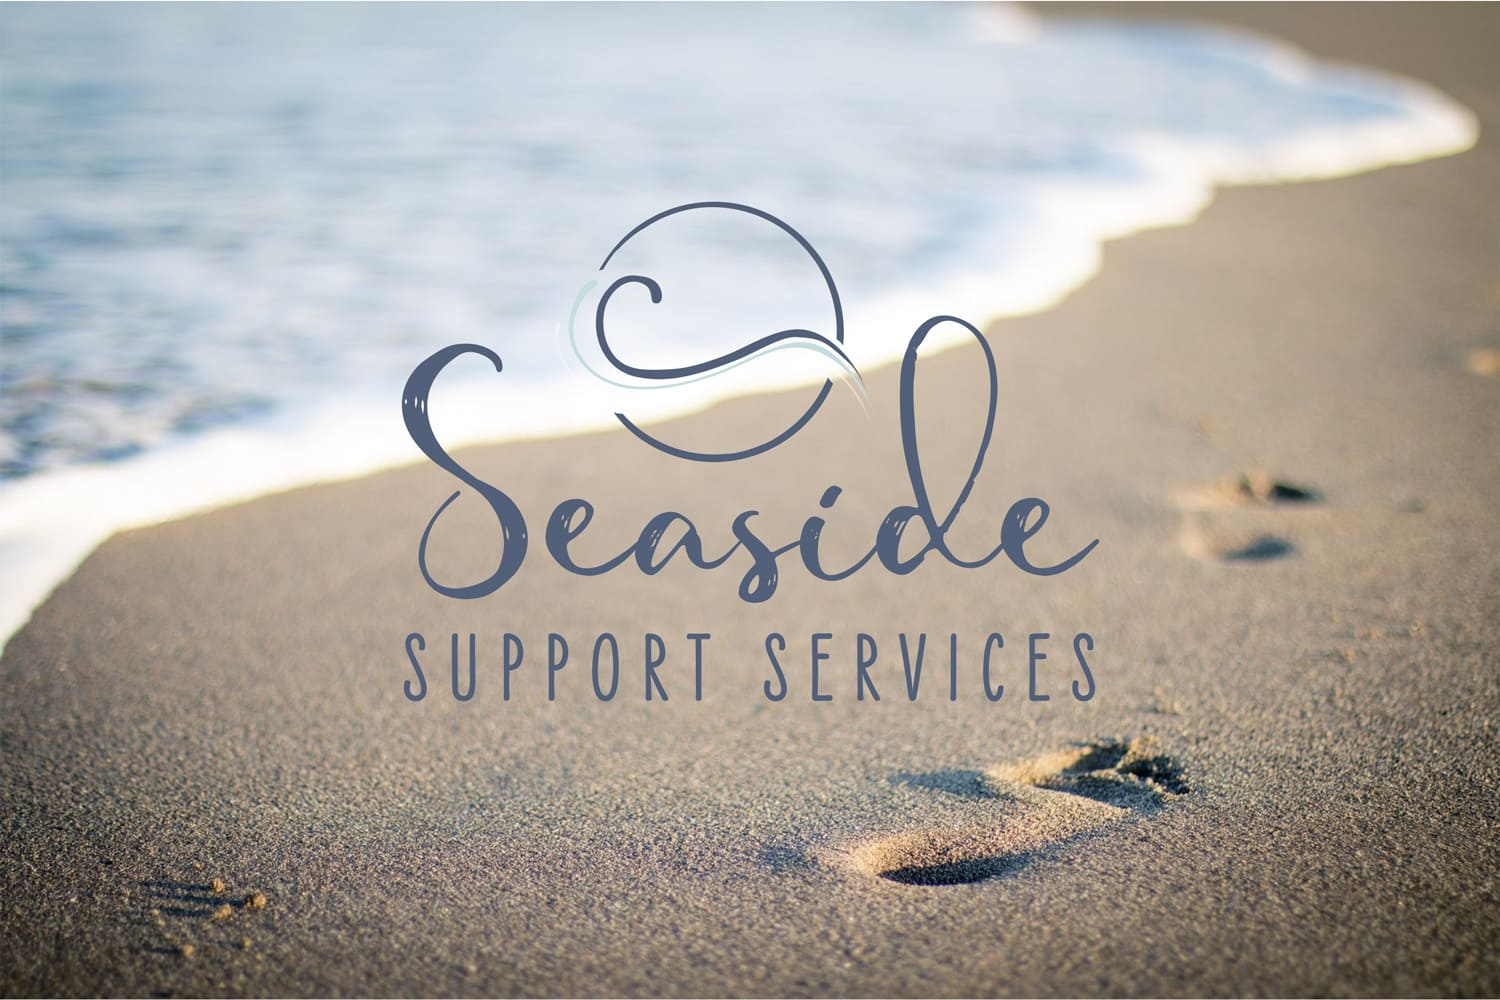 Lumina Project : Seaside Support Services - Portfolio Featured Image